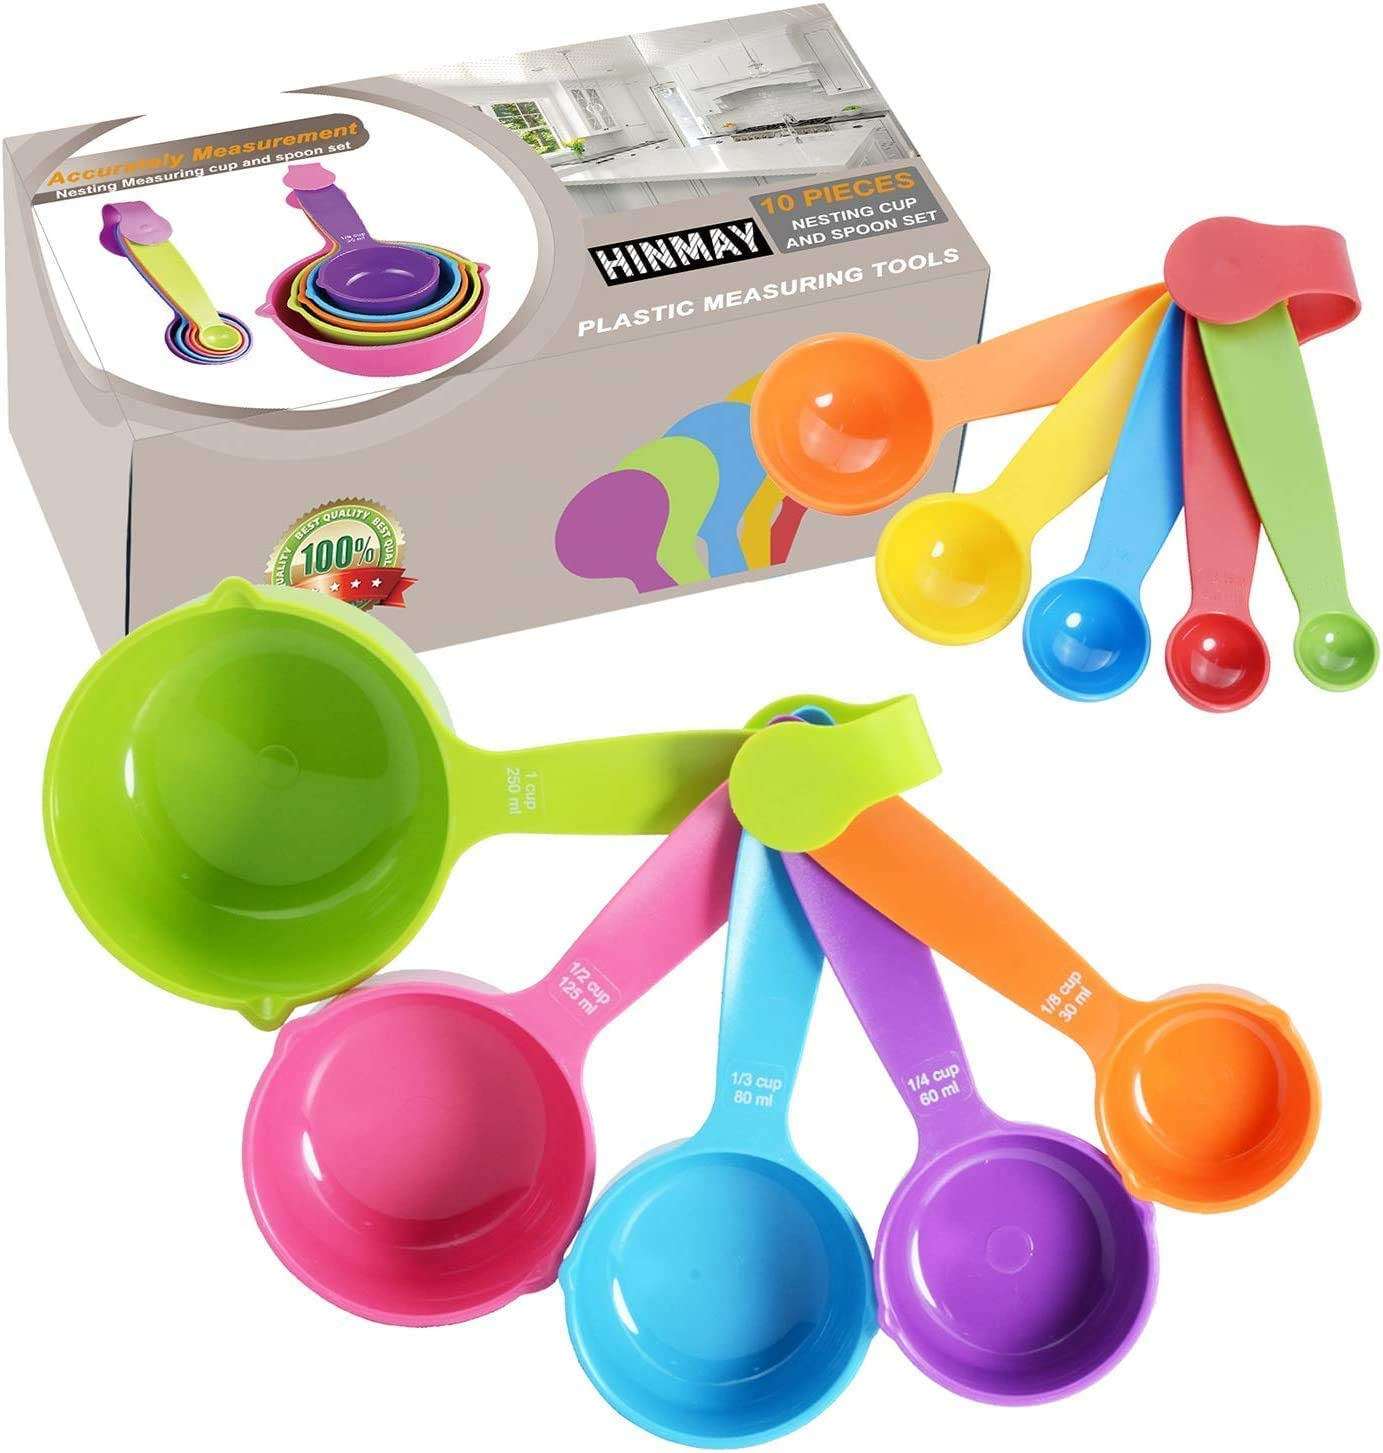 Cups and Spoons Plastic Measuring Tools Set 8 Pieces